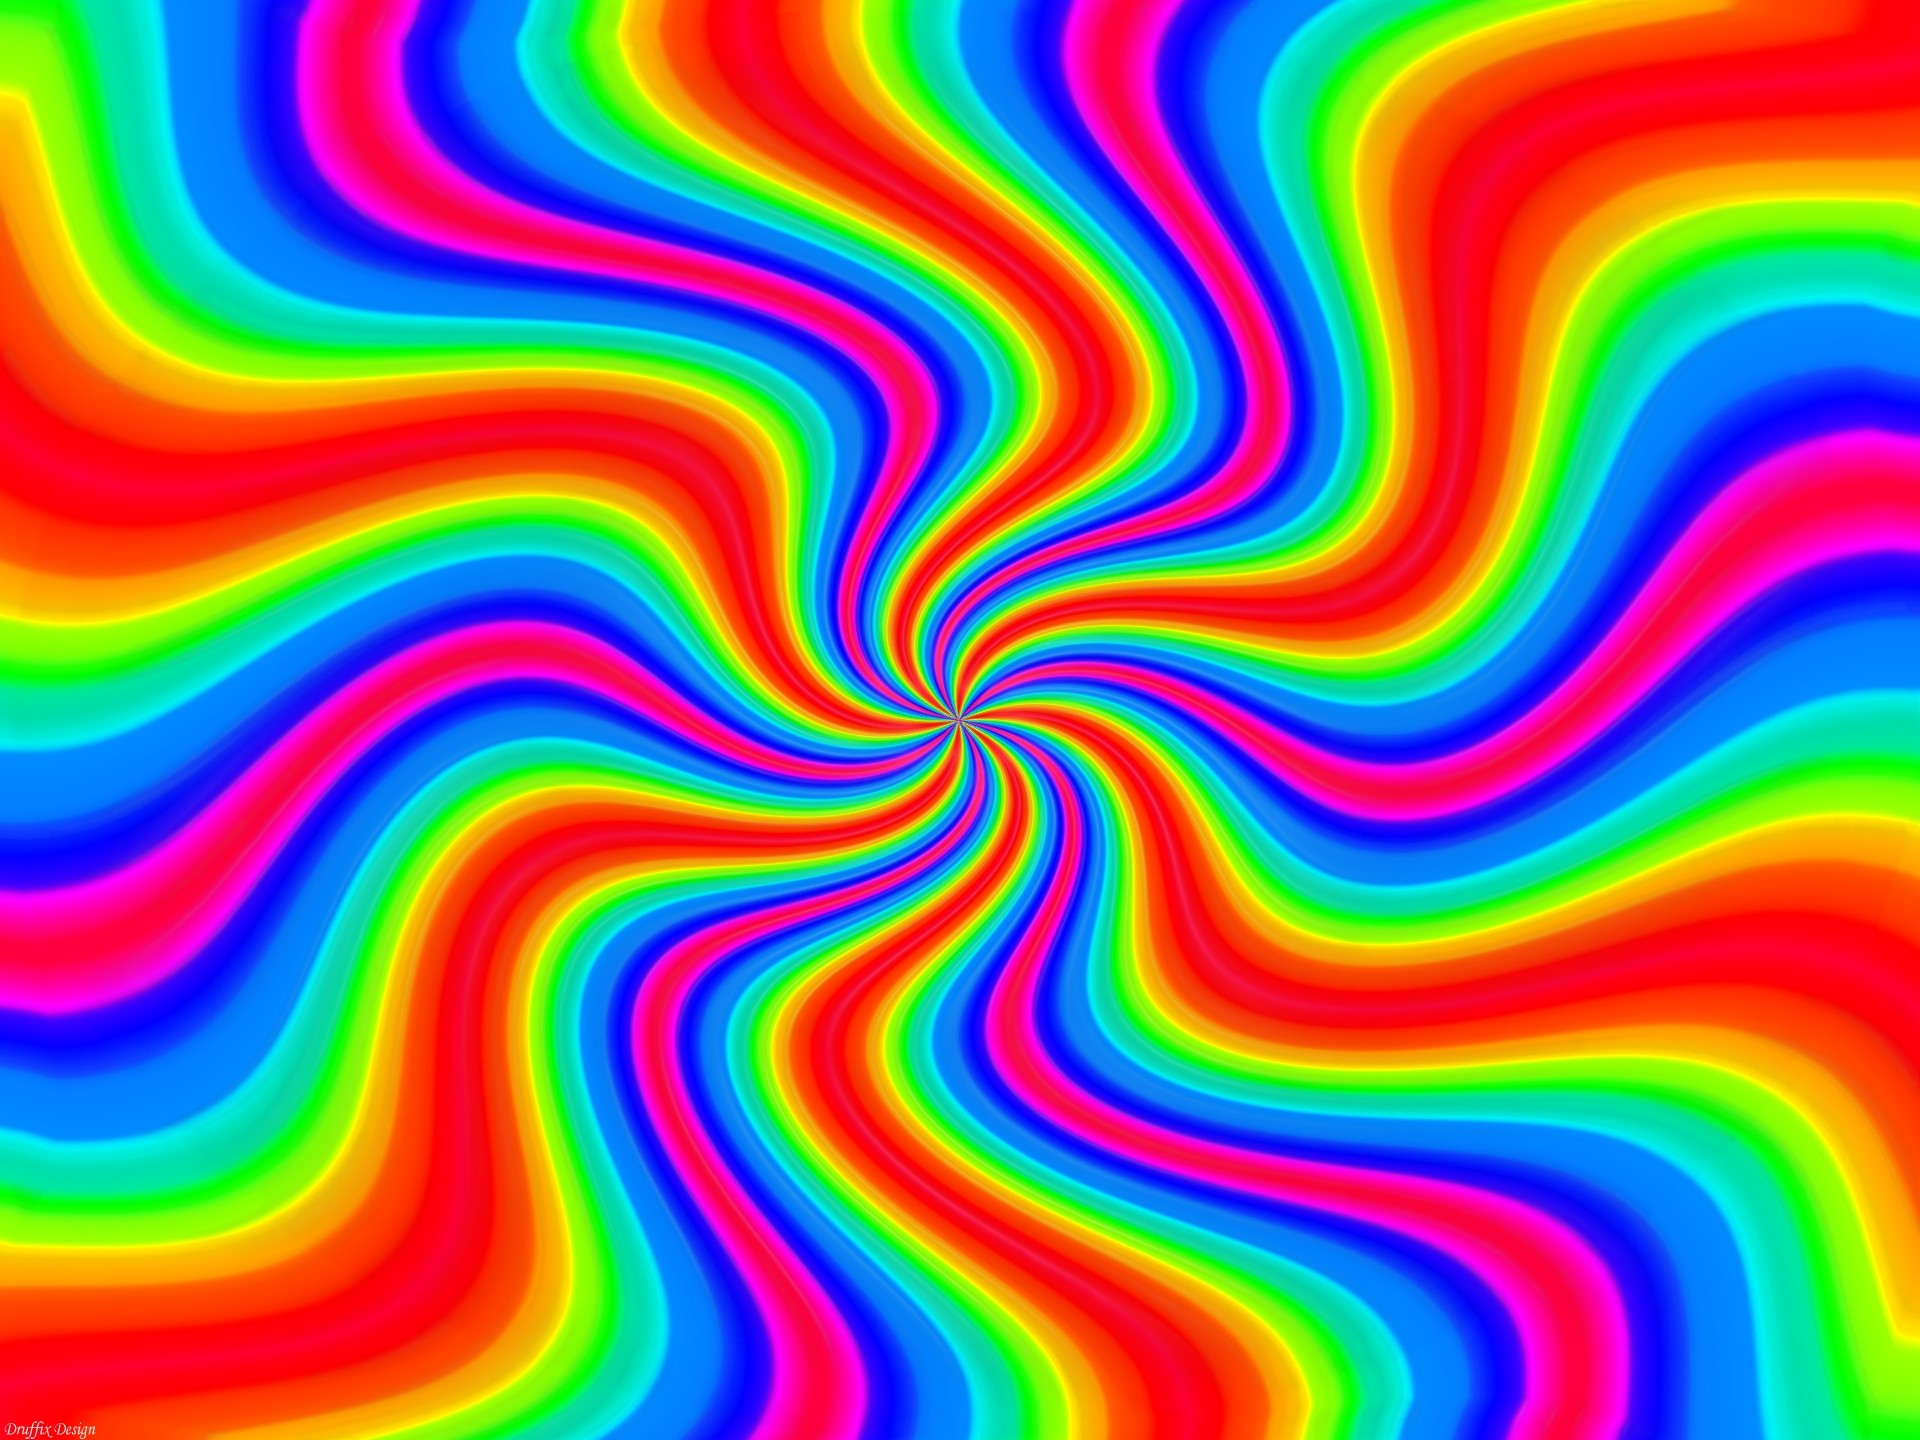 1920x1440 Wallpapers Rainbows Twister Rainbow Abstract Art Chaos Colors .